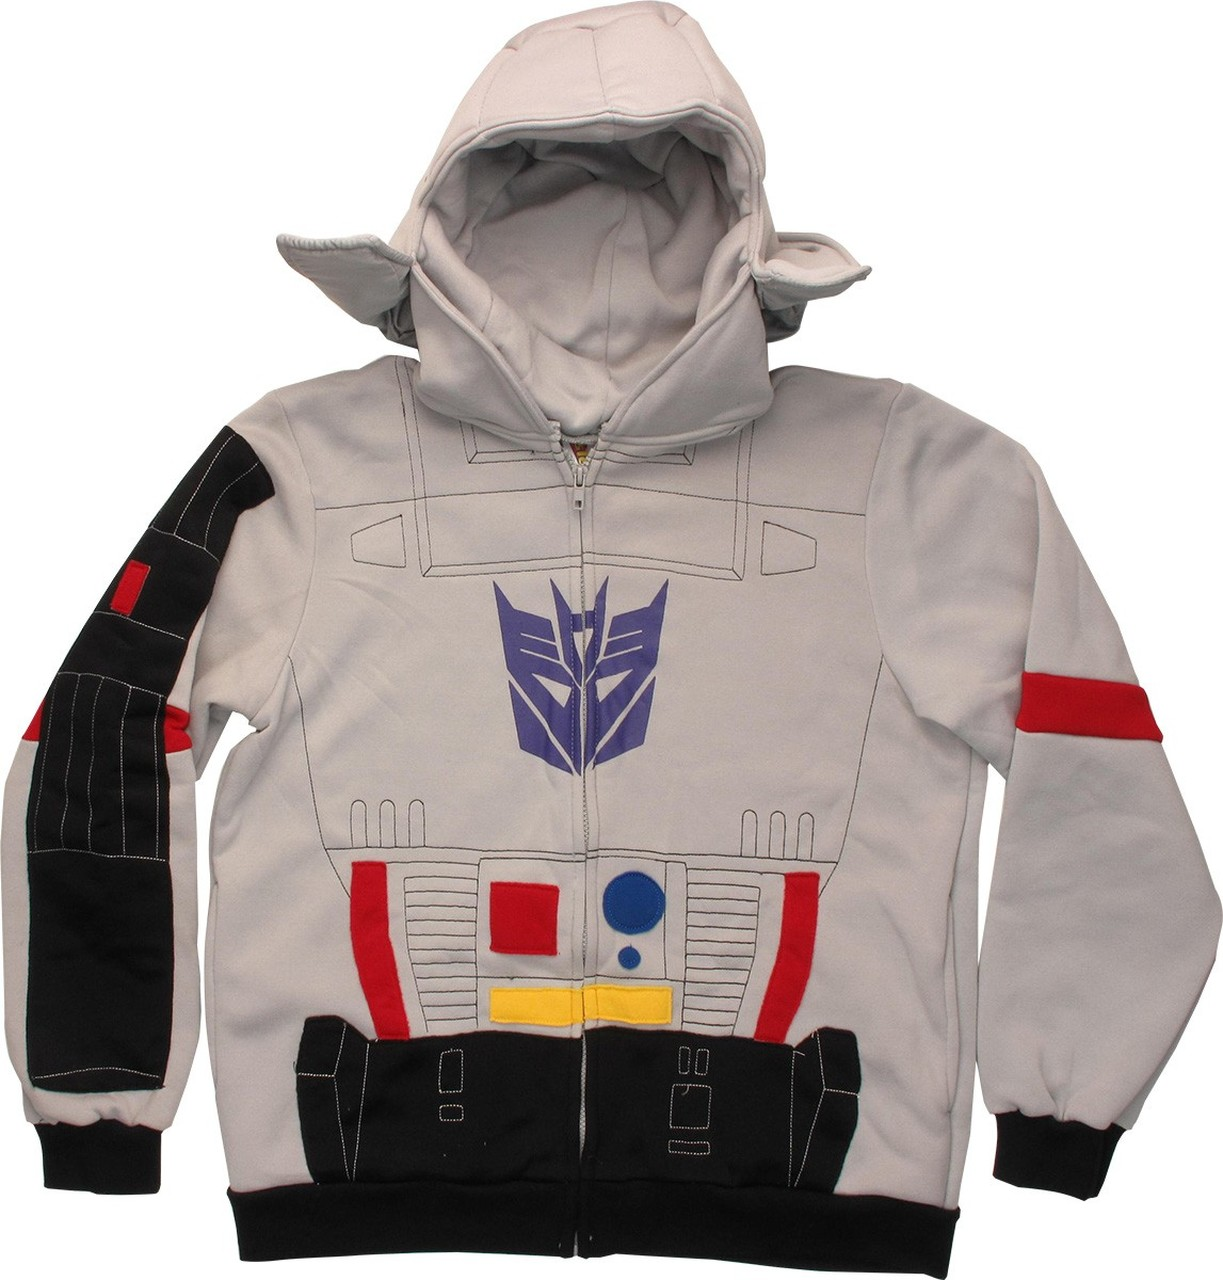 Transformers Megatron Costume Hoodie Gray Officially Licensed Small